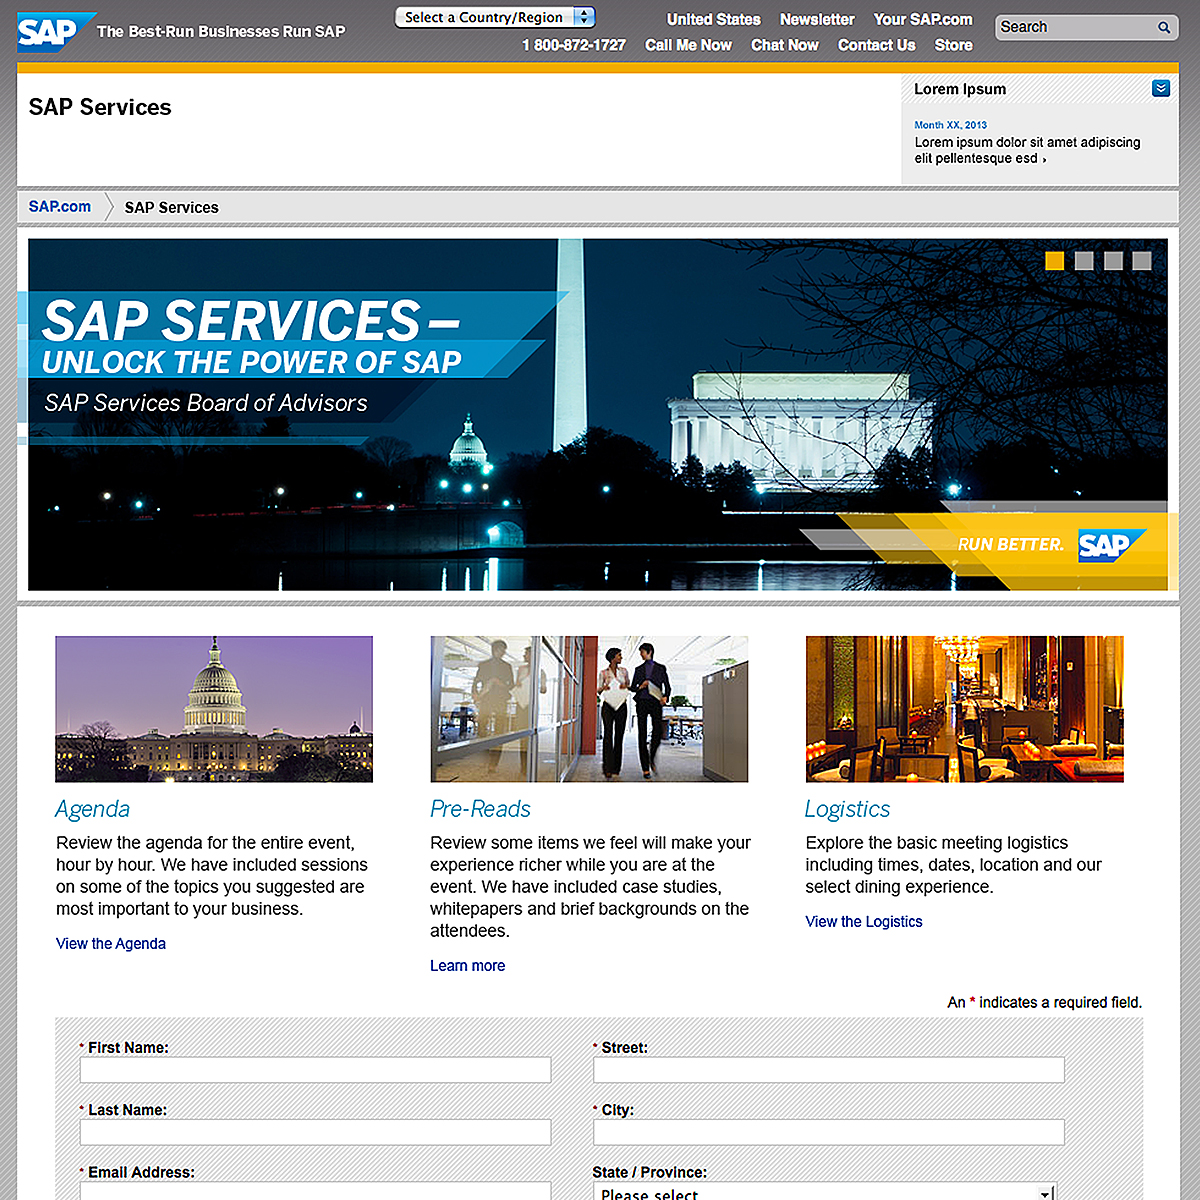 SAP Services Event